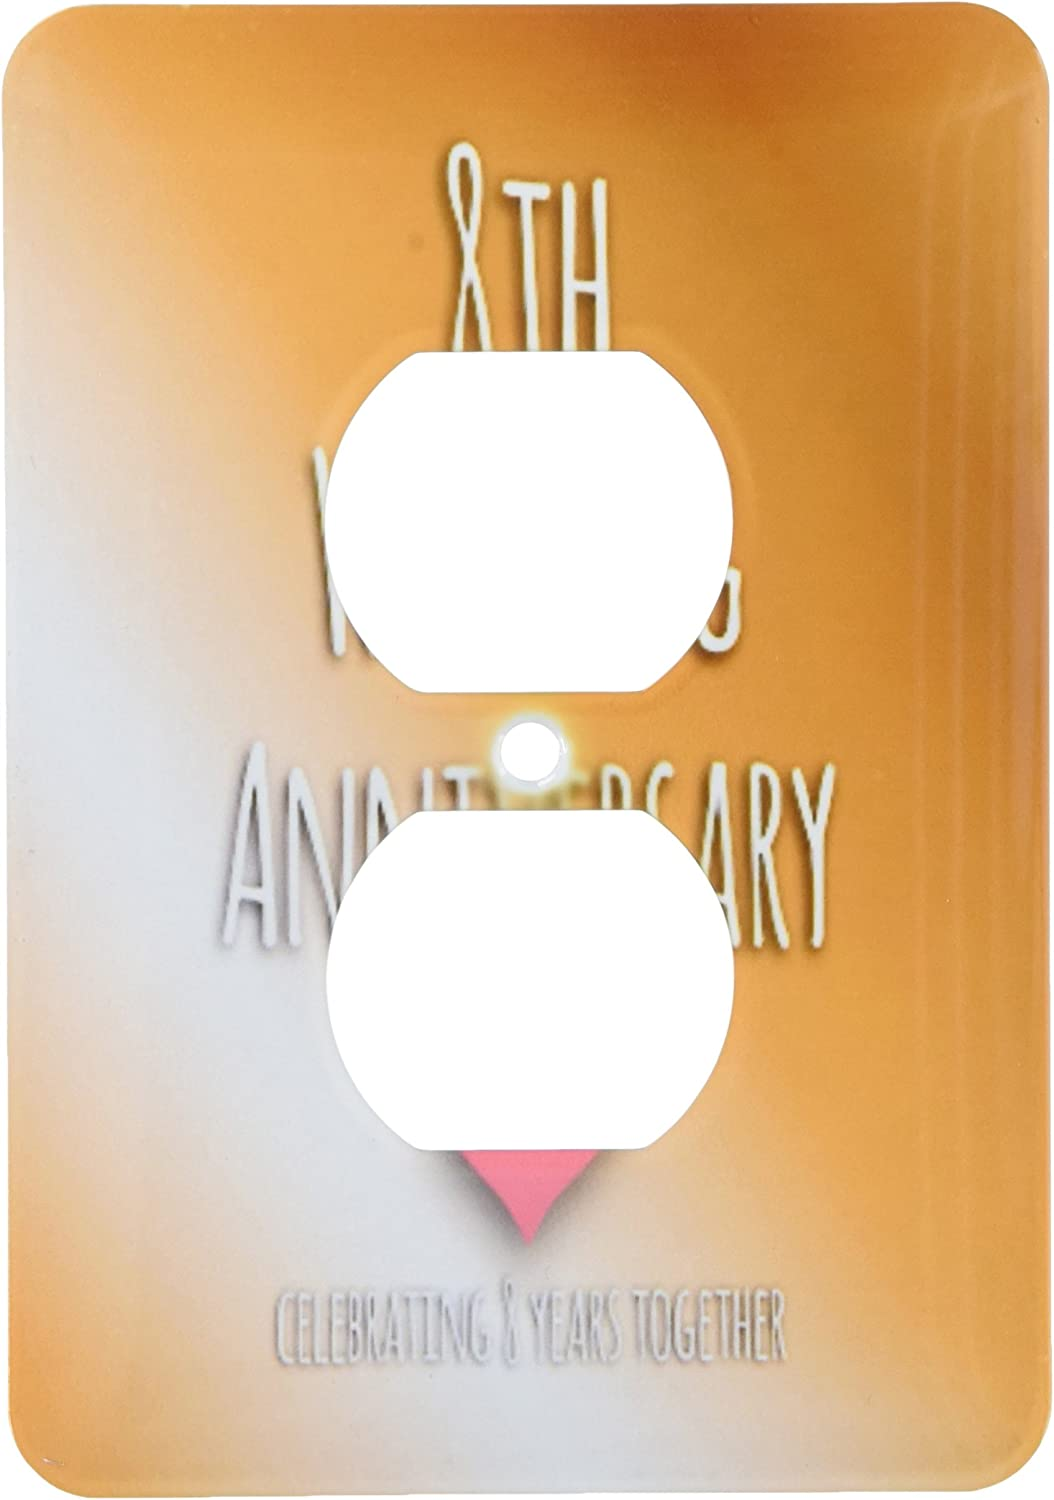 3drose Lsp 154439 6 8th Wedding Anniversary Gift Bronze Celebrating 8 Years Together Eighth Anniversaries Eight Yrs Light Switch Cover Outlet Plates Amazon Com